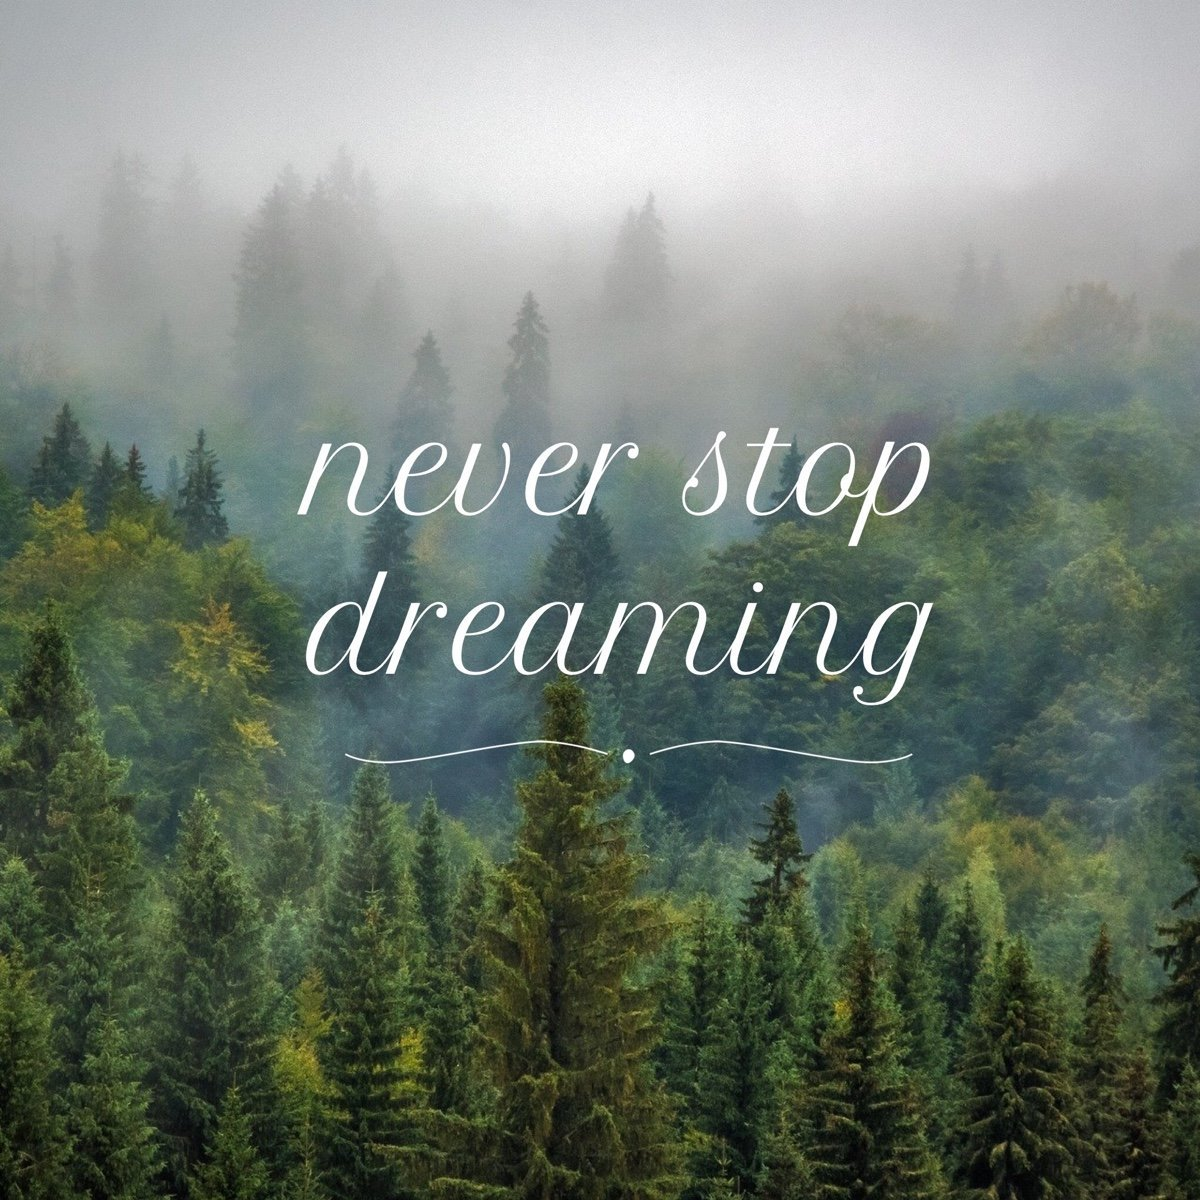 never stop dreaming image quote